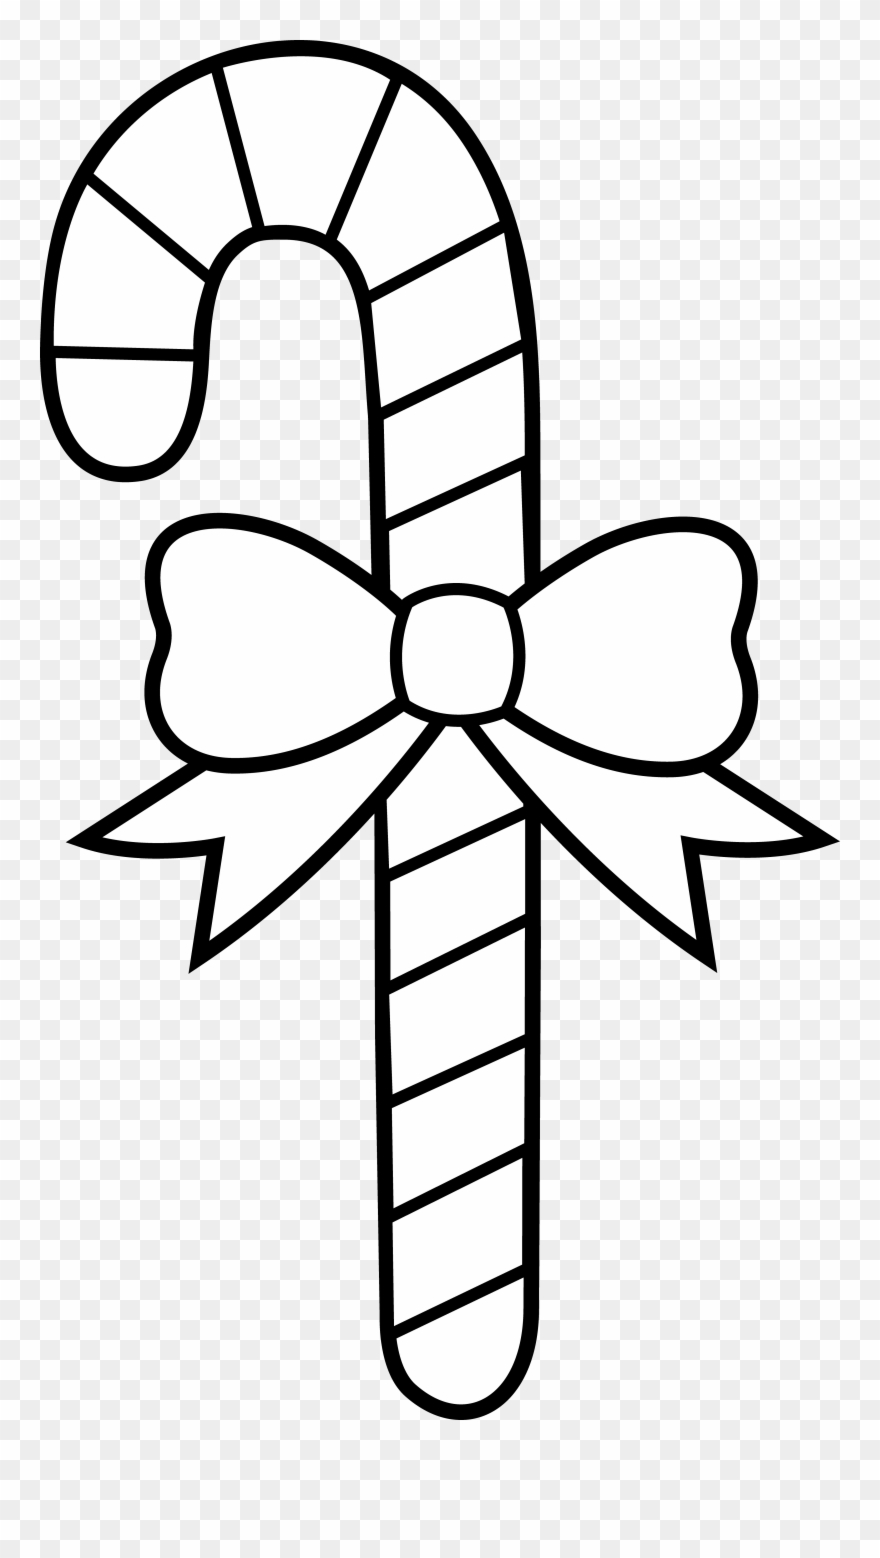 Candy cane black. Coloring pages christmas